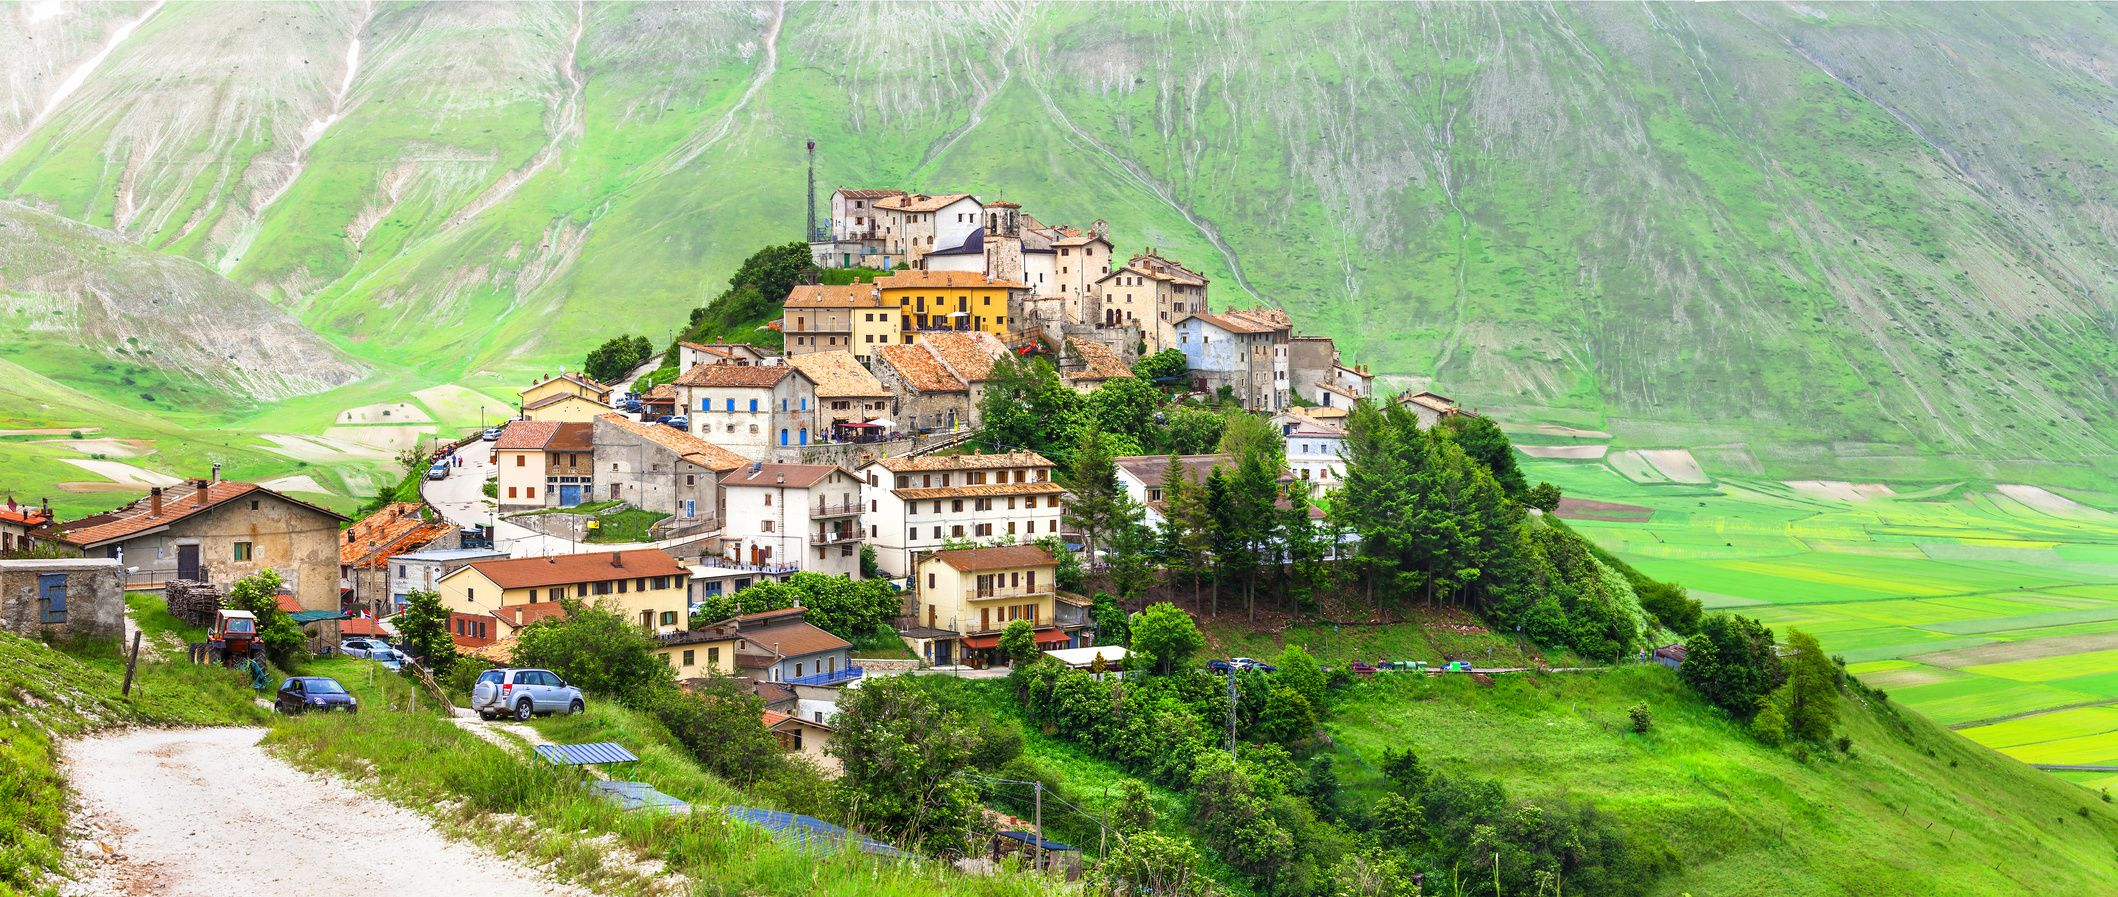 Castelluccio di Norcia -one of the most beautiful villages in Italy